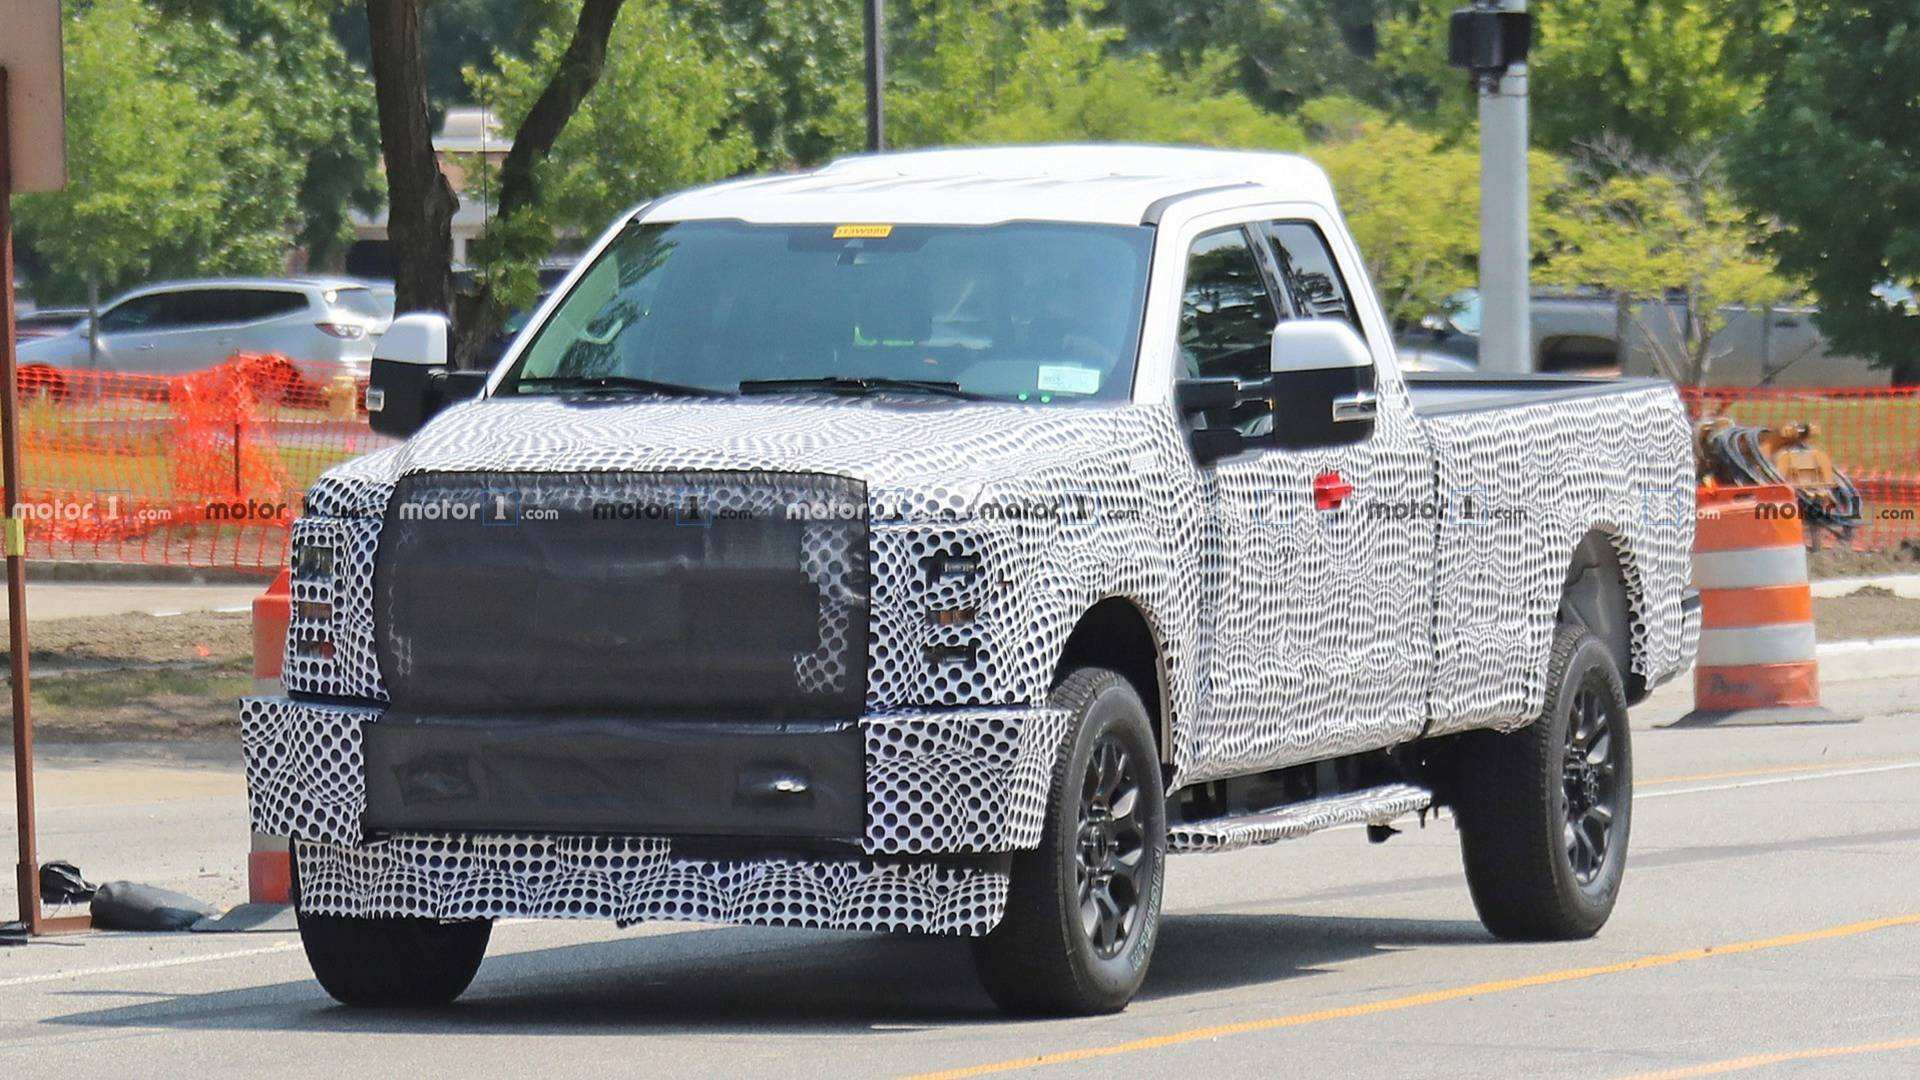 92 Gallery of 2020 Spy Shots Ford F350 Diesel Picture by 2020 Spy Shots Ford F350 Diesel